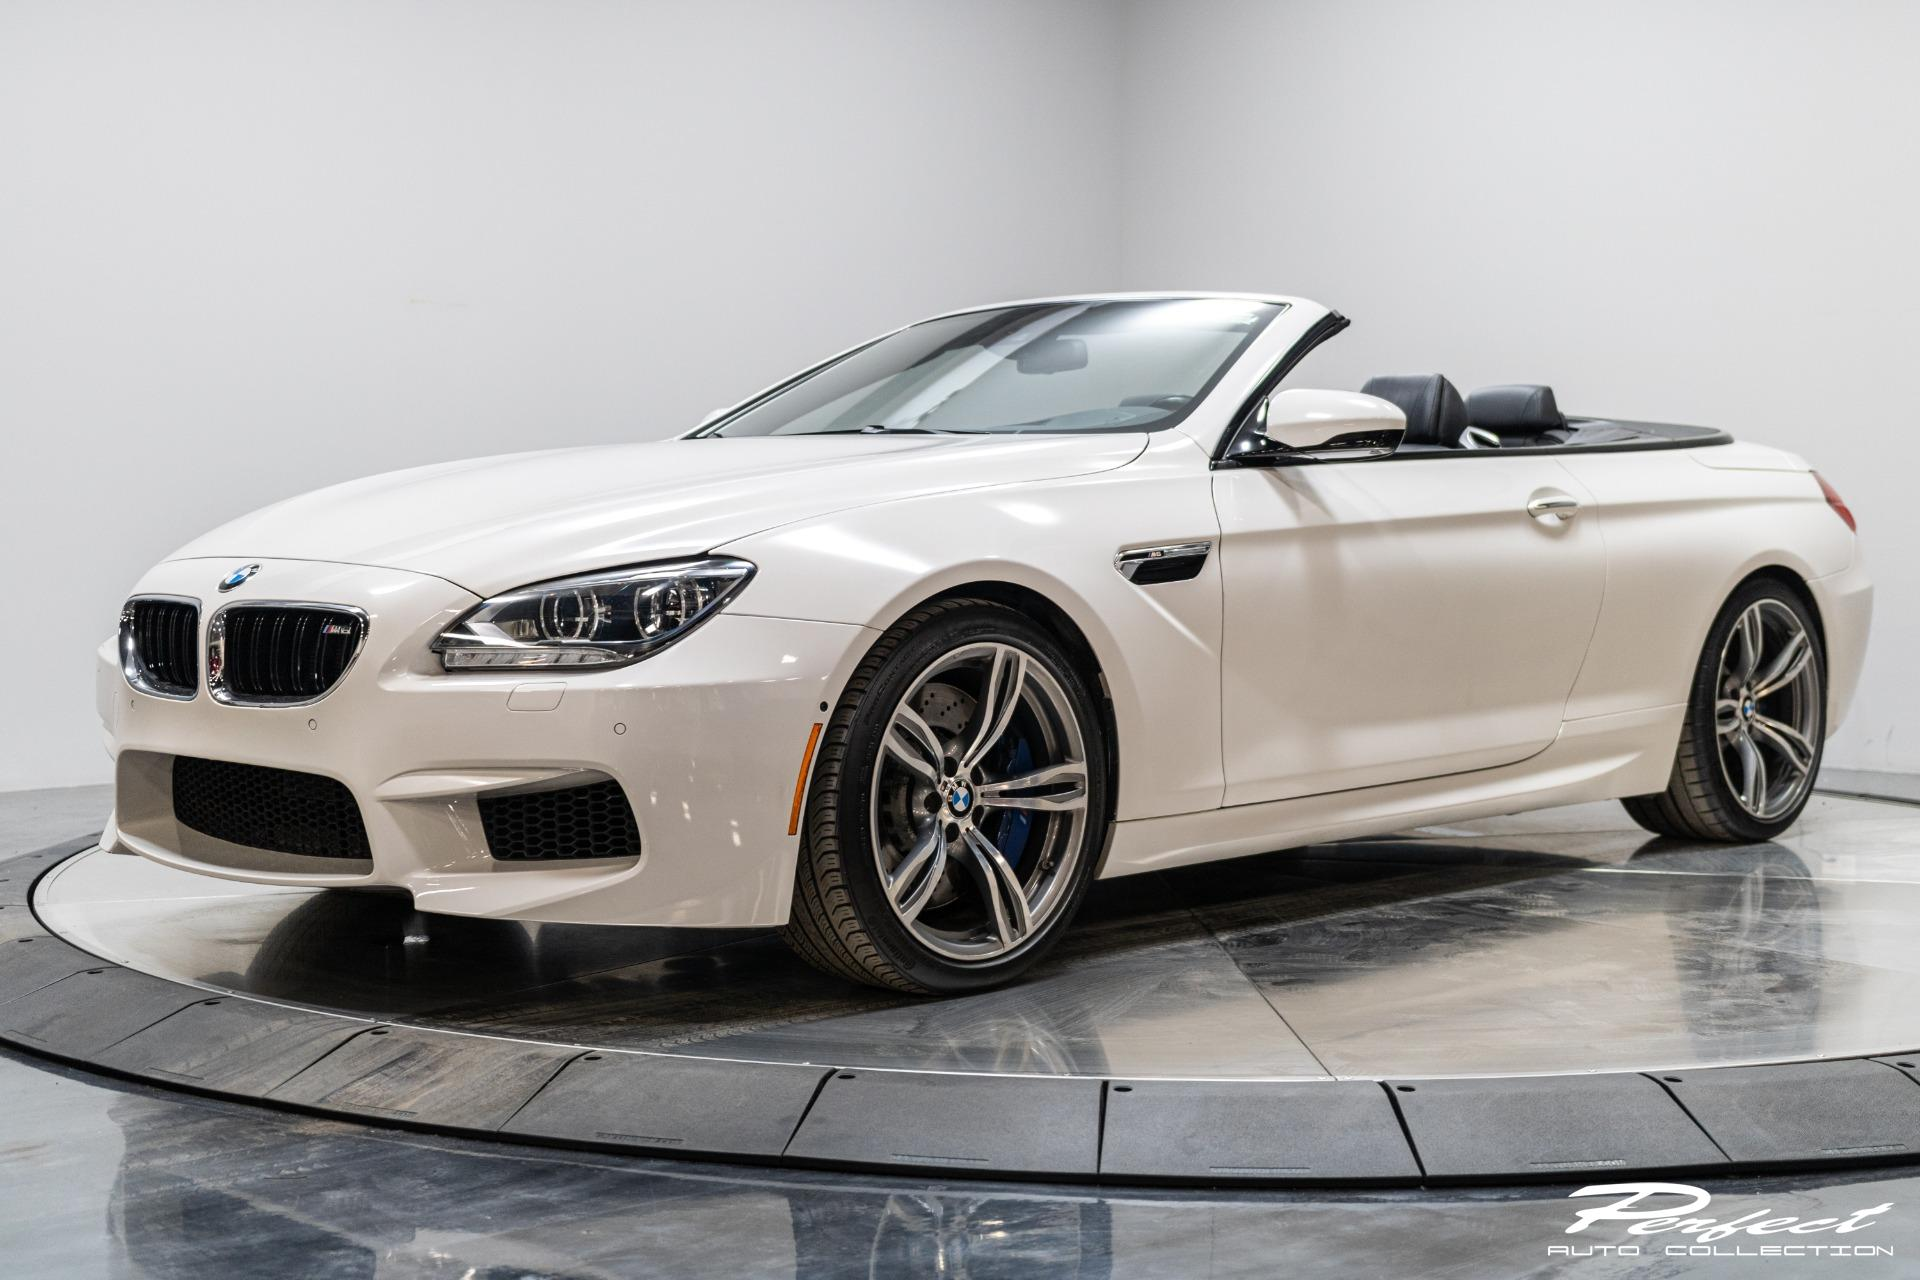 Used 2012 BMW M6 Convertible 2D for sale $37,993 at Perfect Auto Collection in Akron OH 44310 1